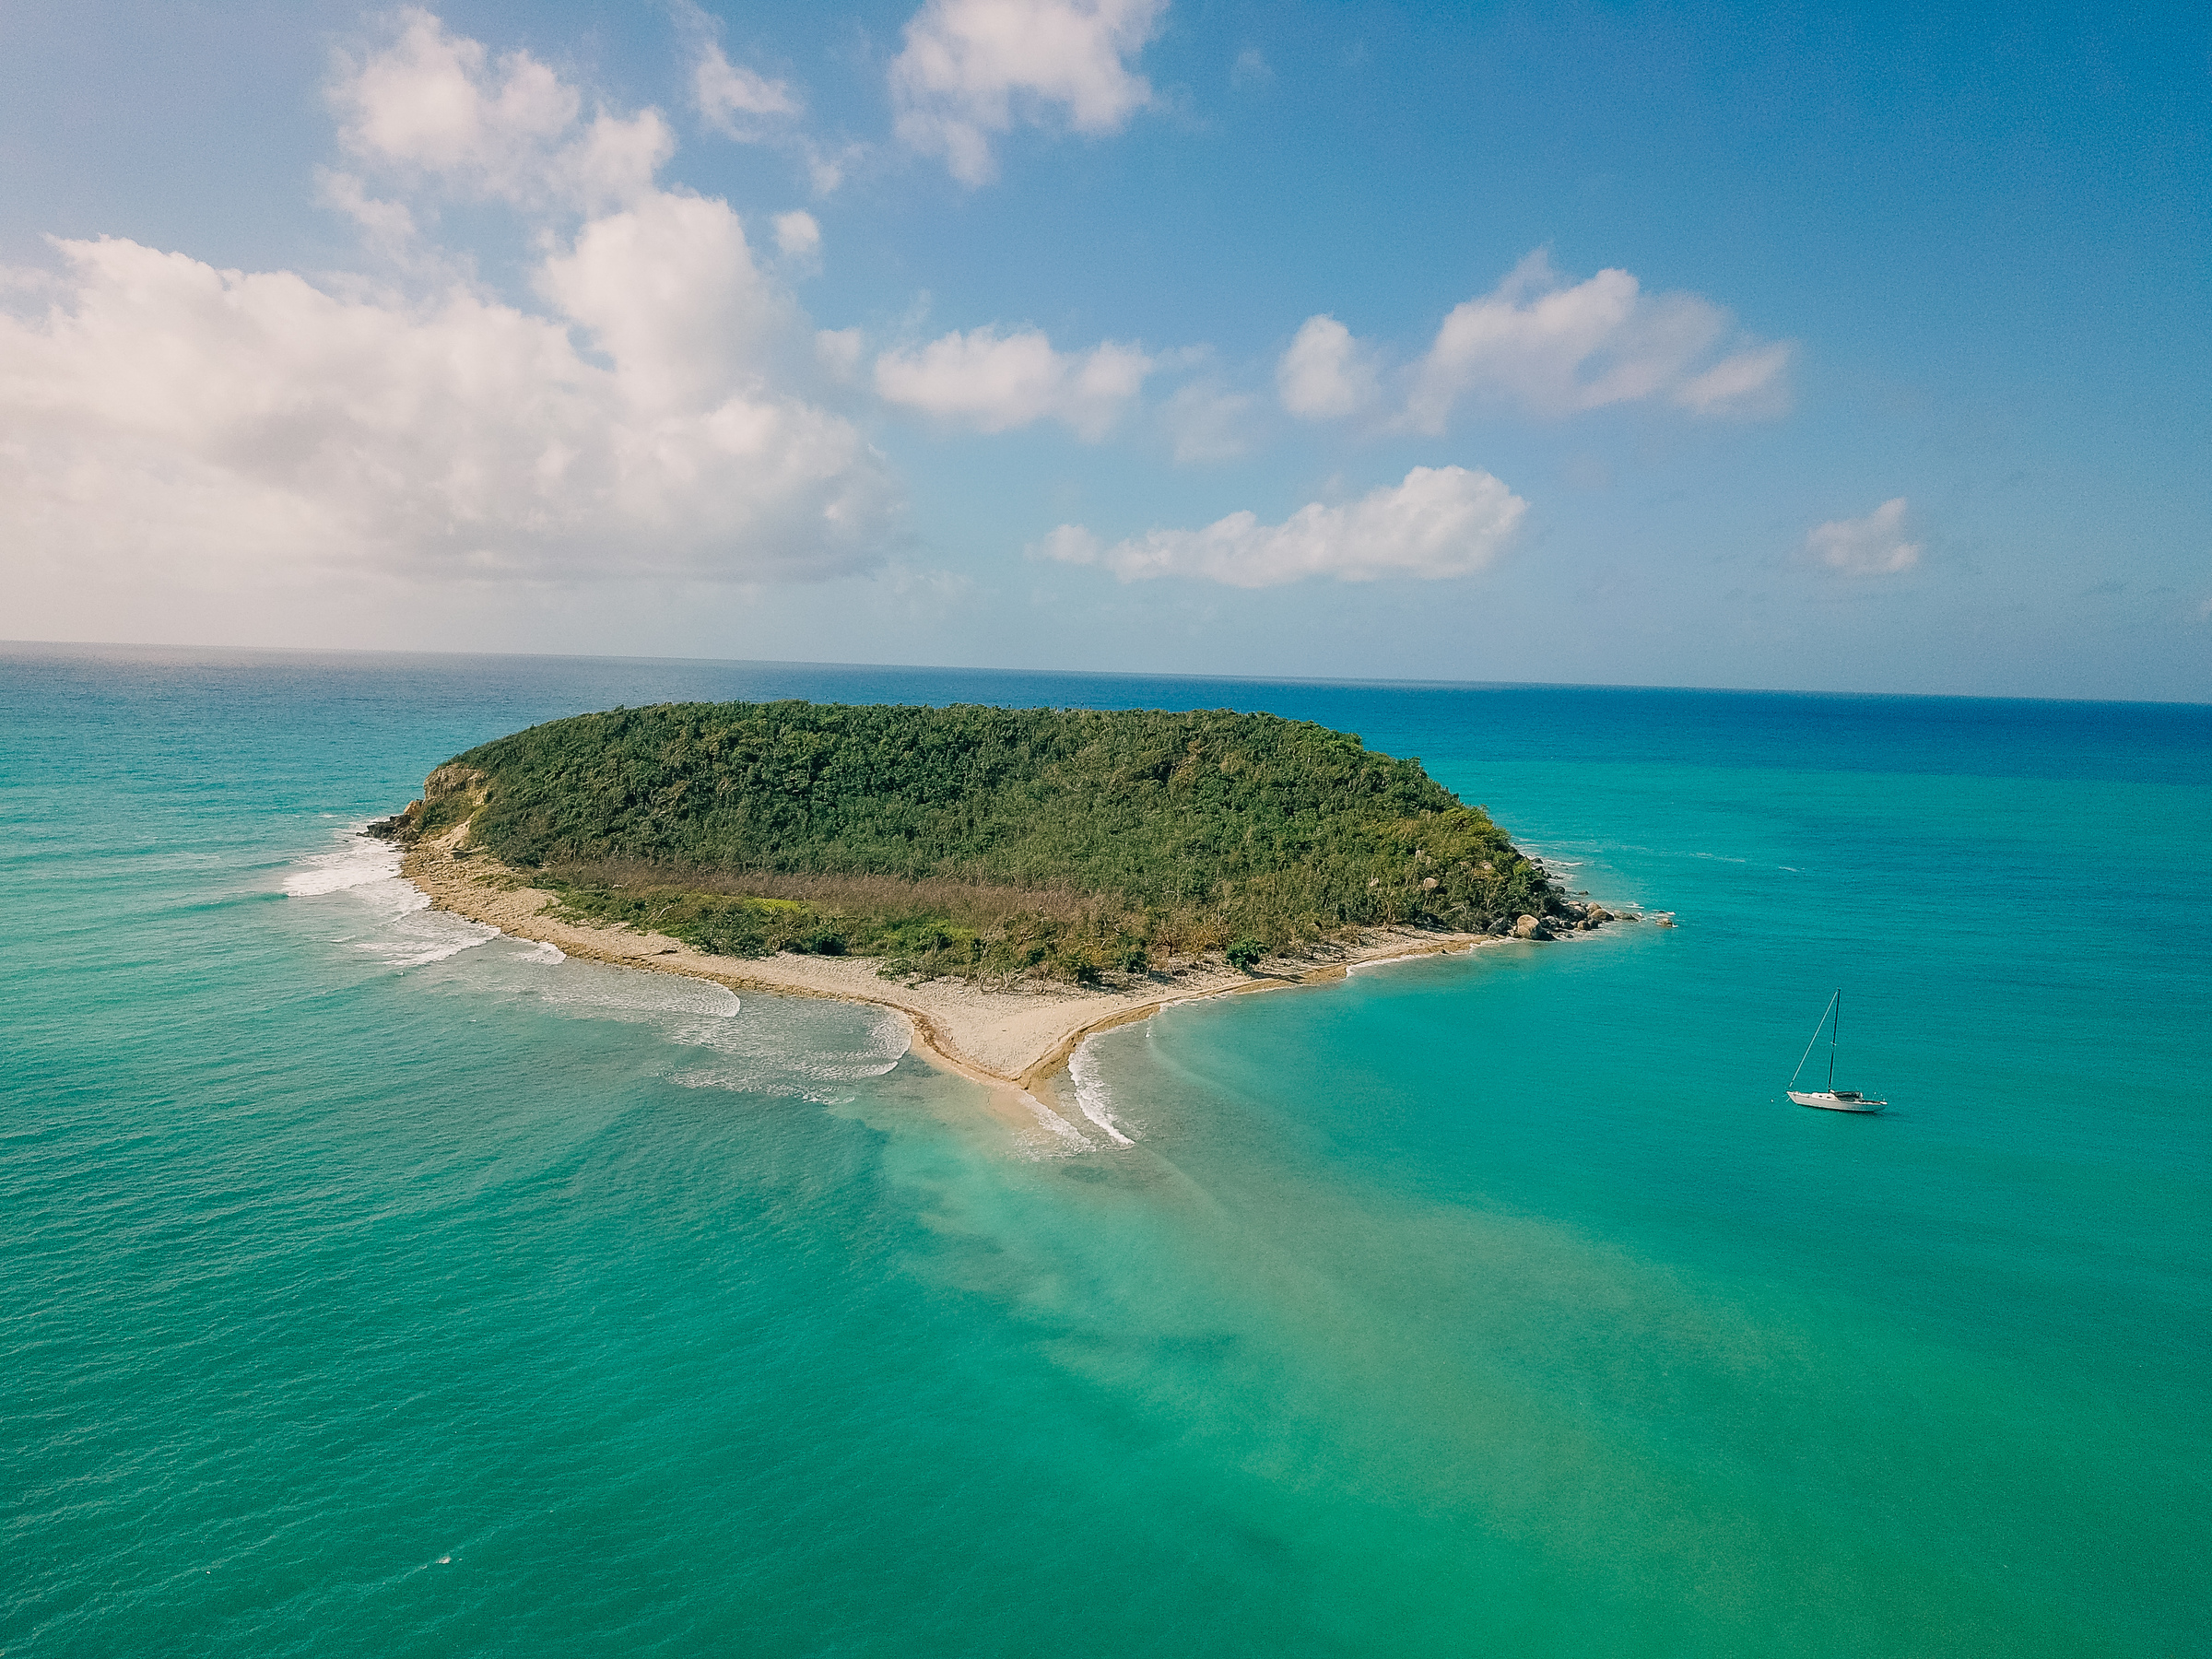 An aerial view of Esperanza Beach in Vieques, Puerto Rico.